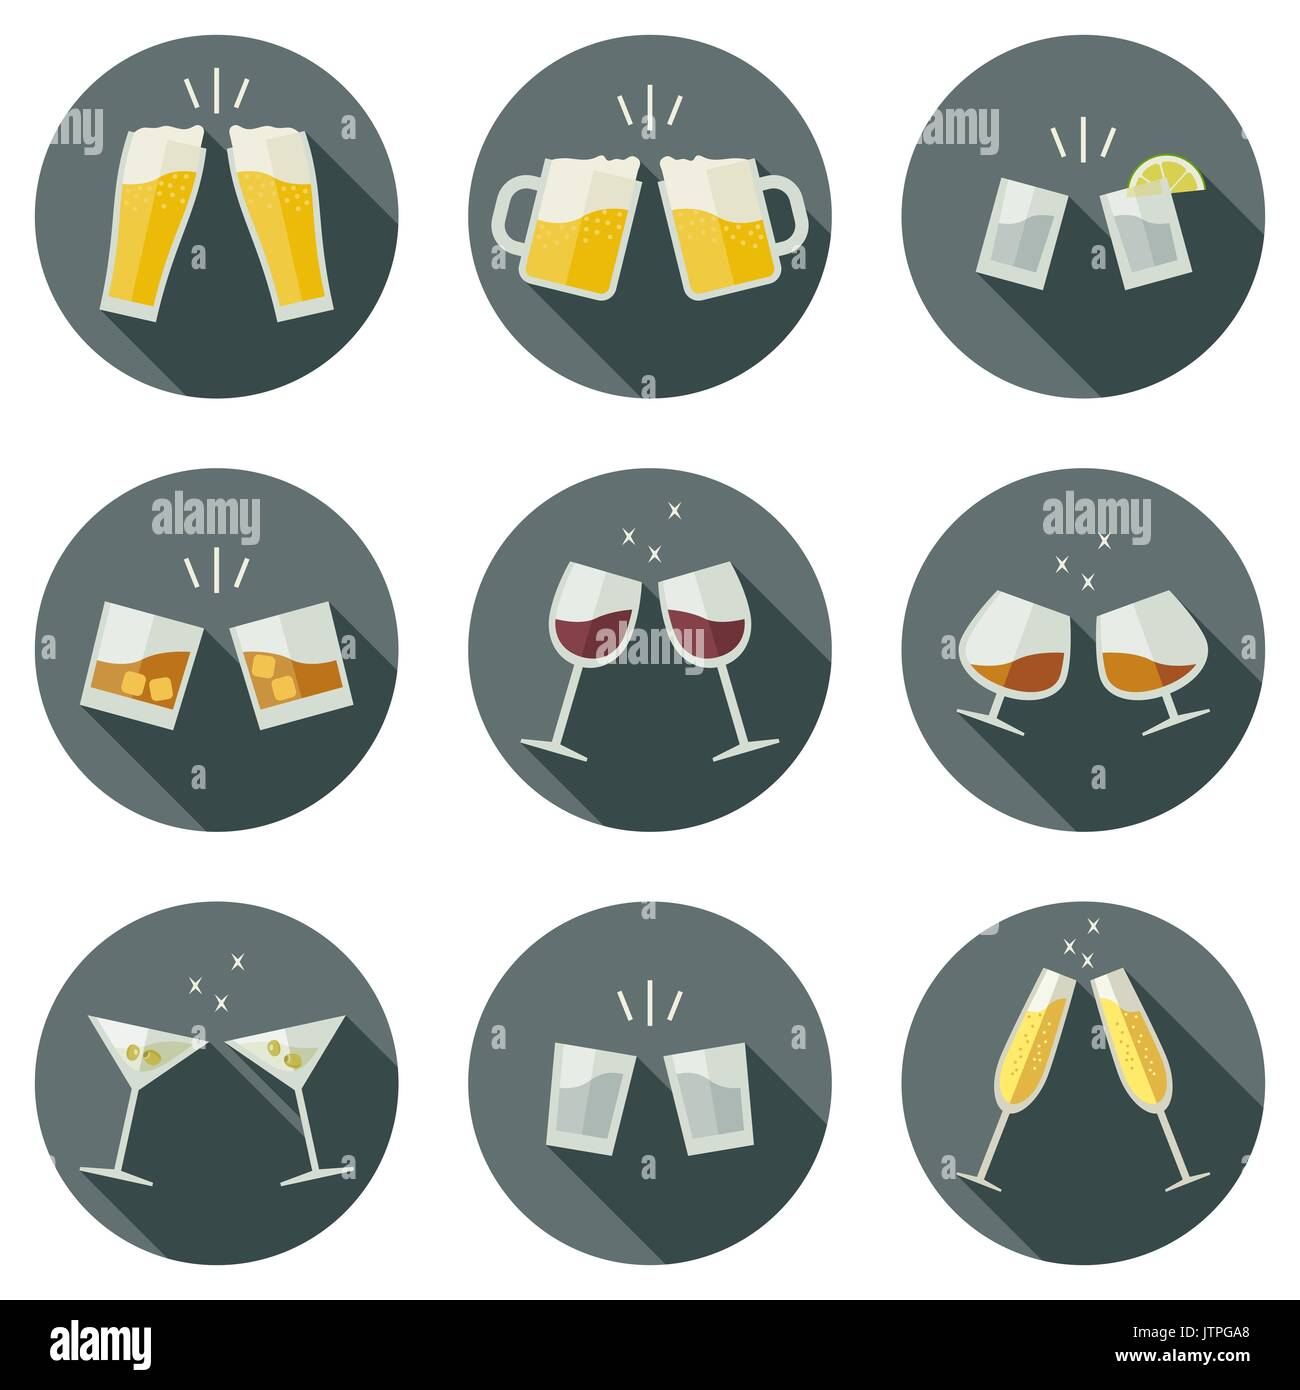 Clink glasses icons. - Stock Image